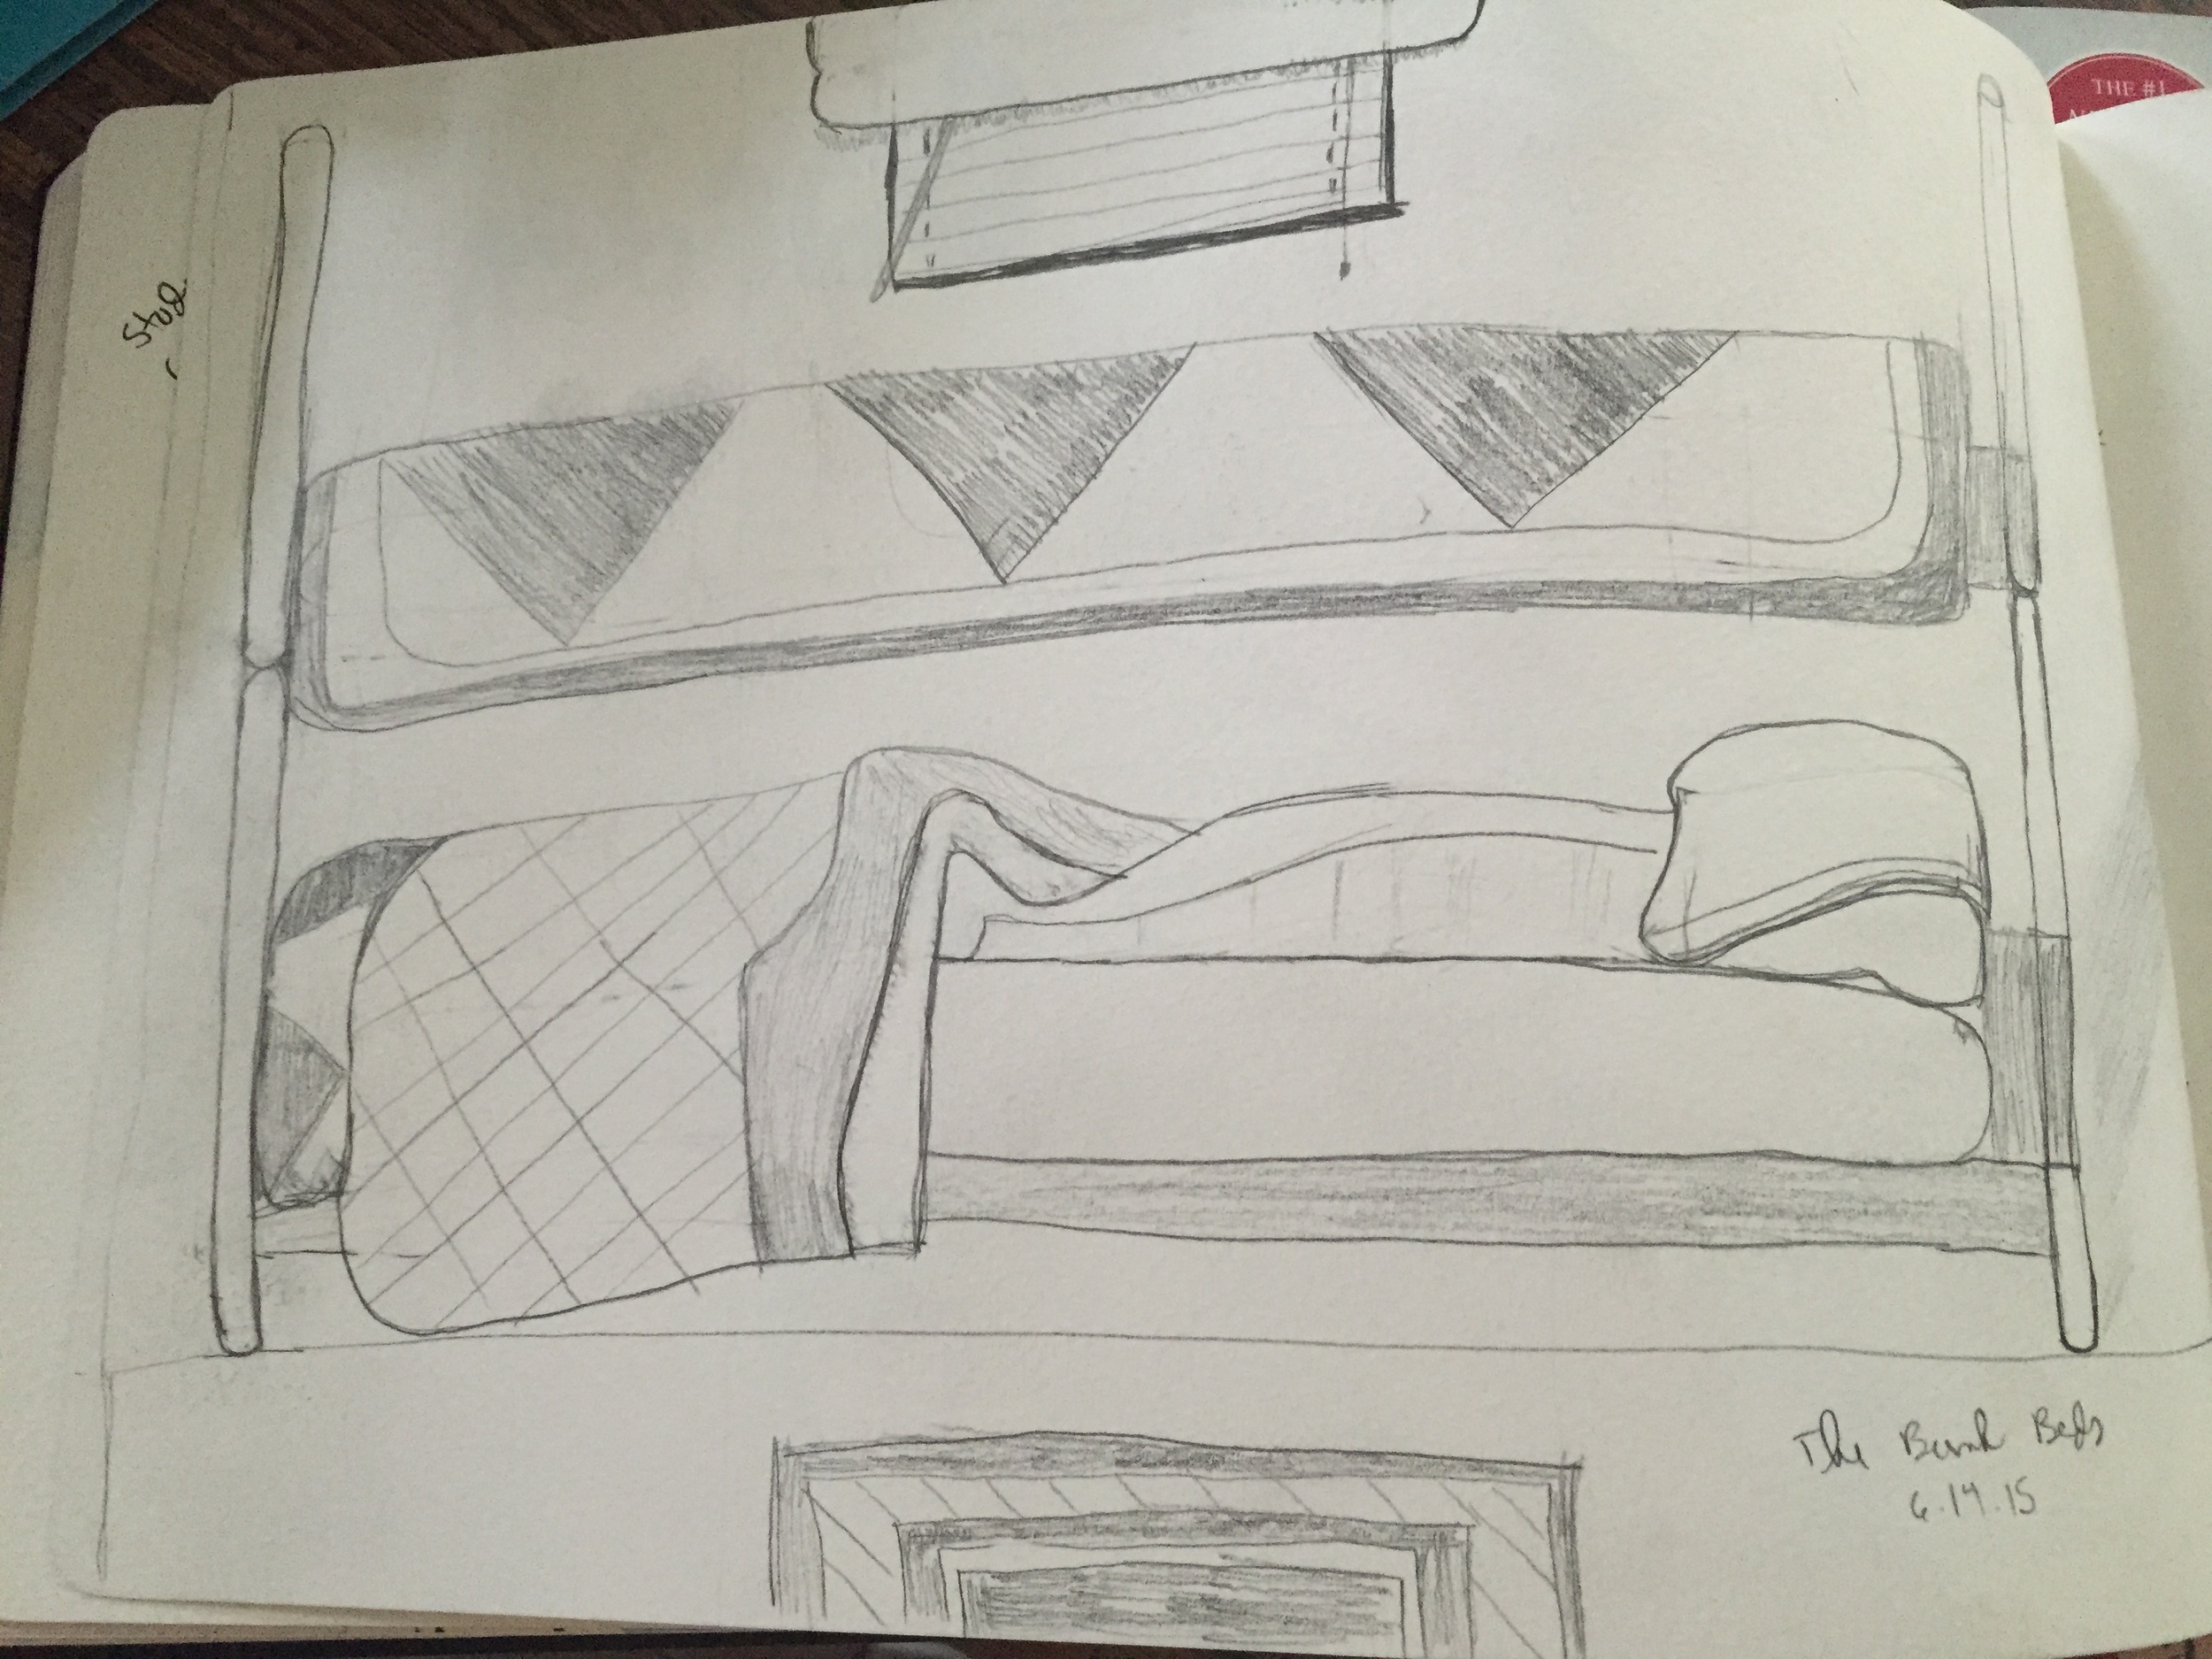 the bunkbeds at my grandma's house. I'm glad I drew this because the beds have since been dismantled.